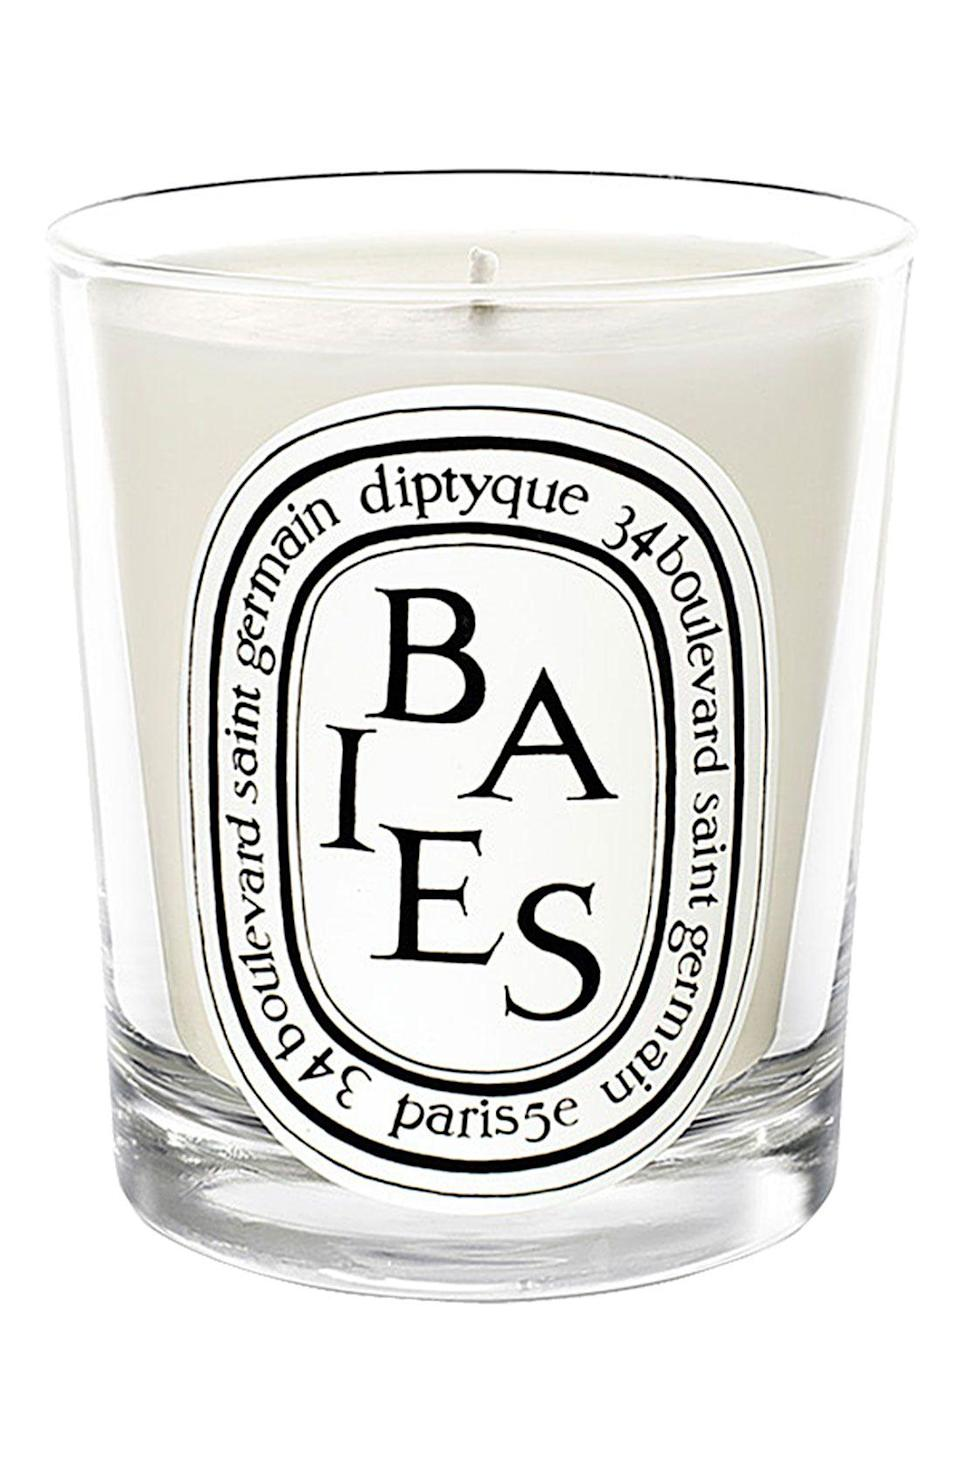 """<p><strong>Diptyque</strong></p><p>nordstrom.com</p><p><strong>$65.00</strong></p><p><a href=""""https://go.redirectingat.com?id=74968X1596630&url=https%3A%2F%2Fwww.nordstrom.com%2Fs%2Fdiptyque-baies-berries-candle%2F3227984&sref=https%3A%2F%2Fwww.townandcountrymag.com%2Fstyle%2Fbeauty-products%2Fg19408606%2Fgift-ideas-for-women%2F"""" rel=""""nofollow noopener"""" target=""""_blank"""" data-ylk=""""slk:Shop Now"""" class=""""link rapid-noclick-resp"""">Shop Now</a></p><p>You can't go wrong with a Diptyque candle, especially in its signature scent, Baies.</p>"""